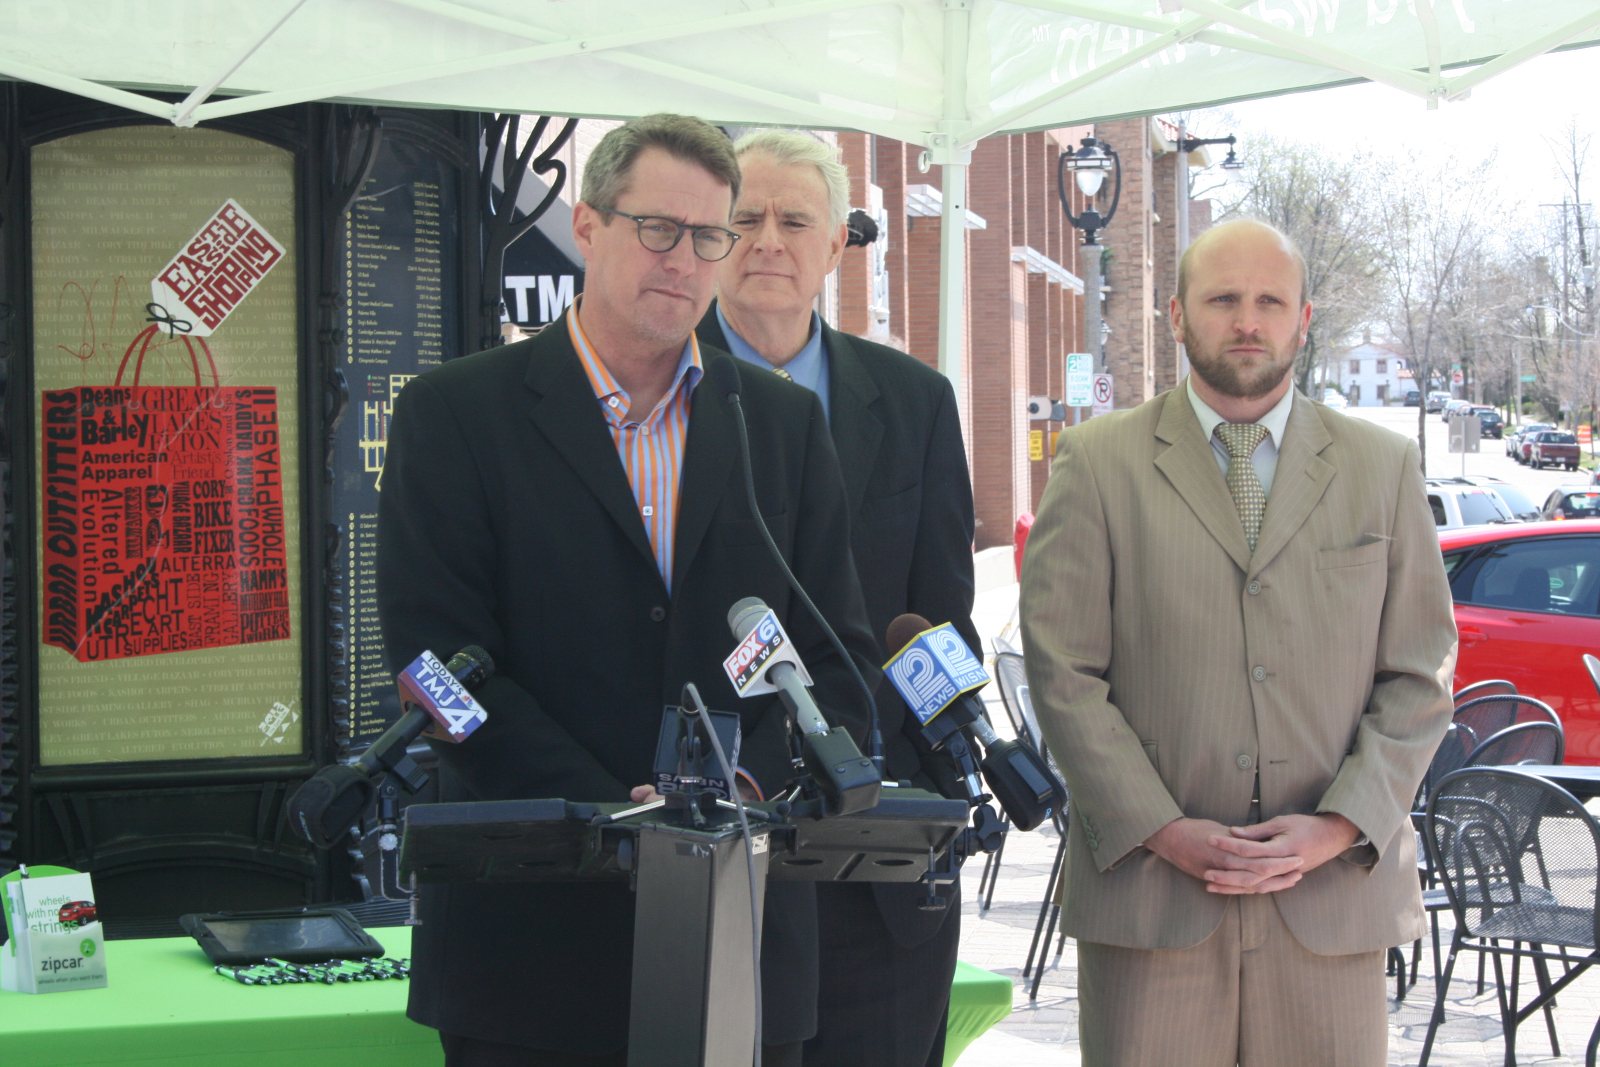 Jim Plaisted speaking at the ZipCar press conference.